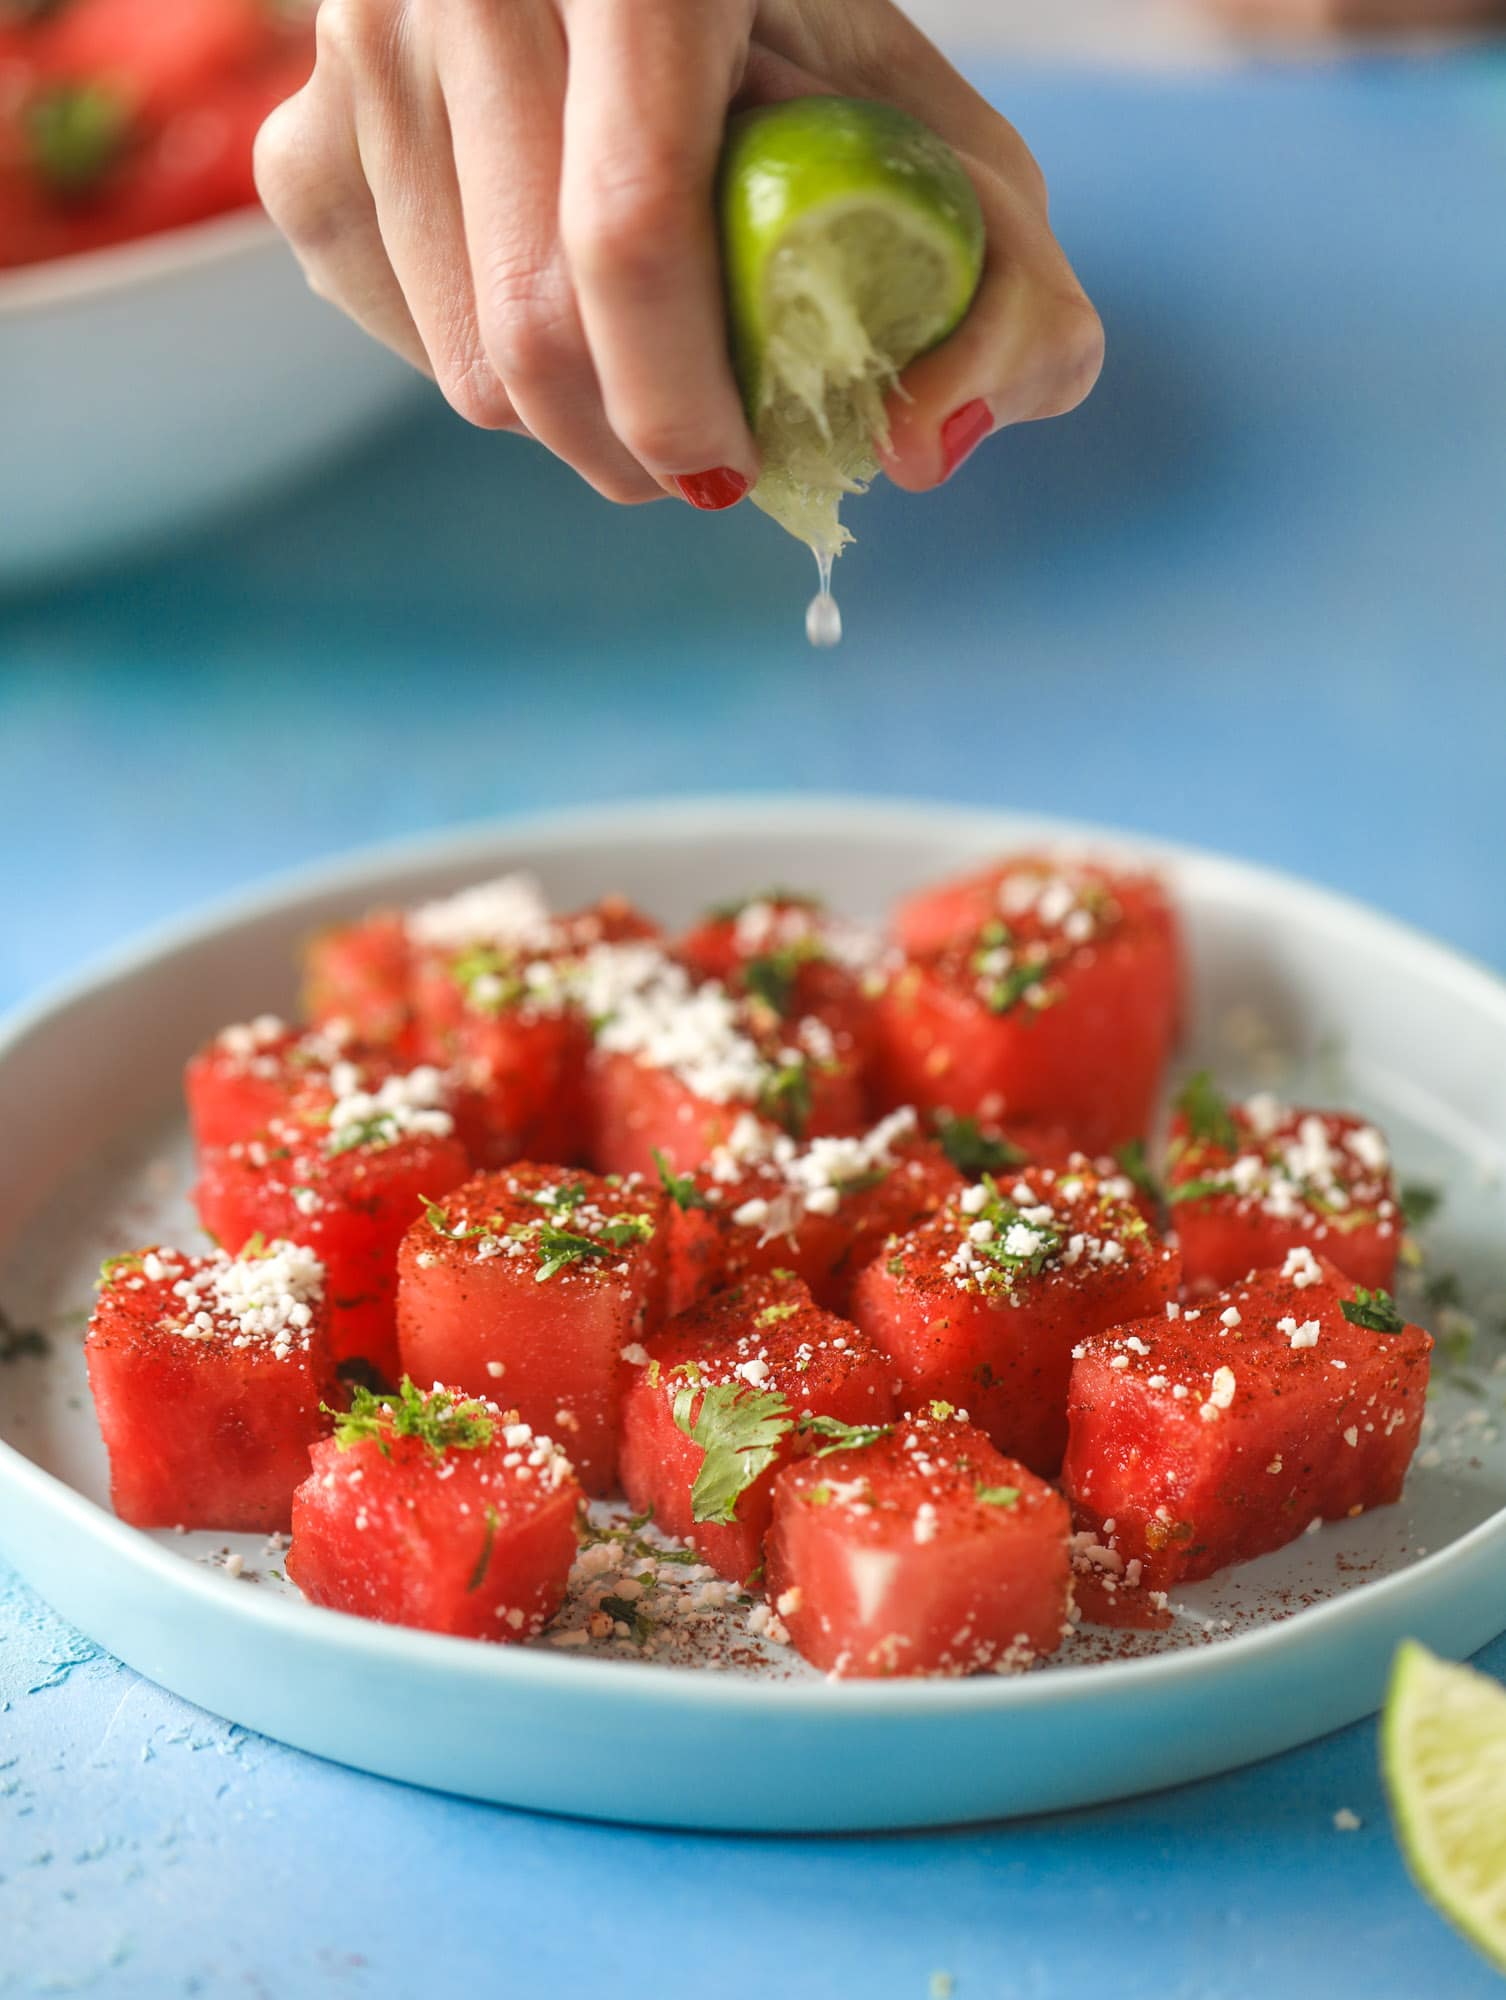 This chili lime watermelon is the perfect summer snack! It's savory and sweet with crumbled cotija cheese and lots of lime. Delish!